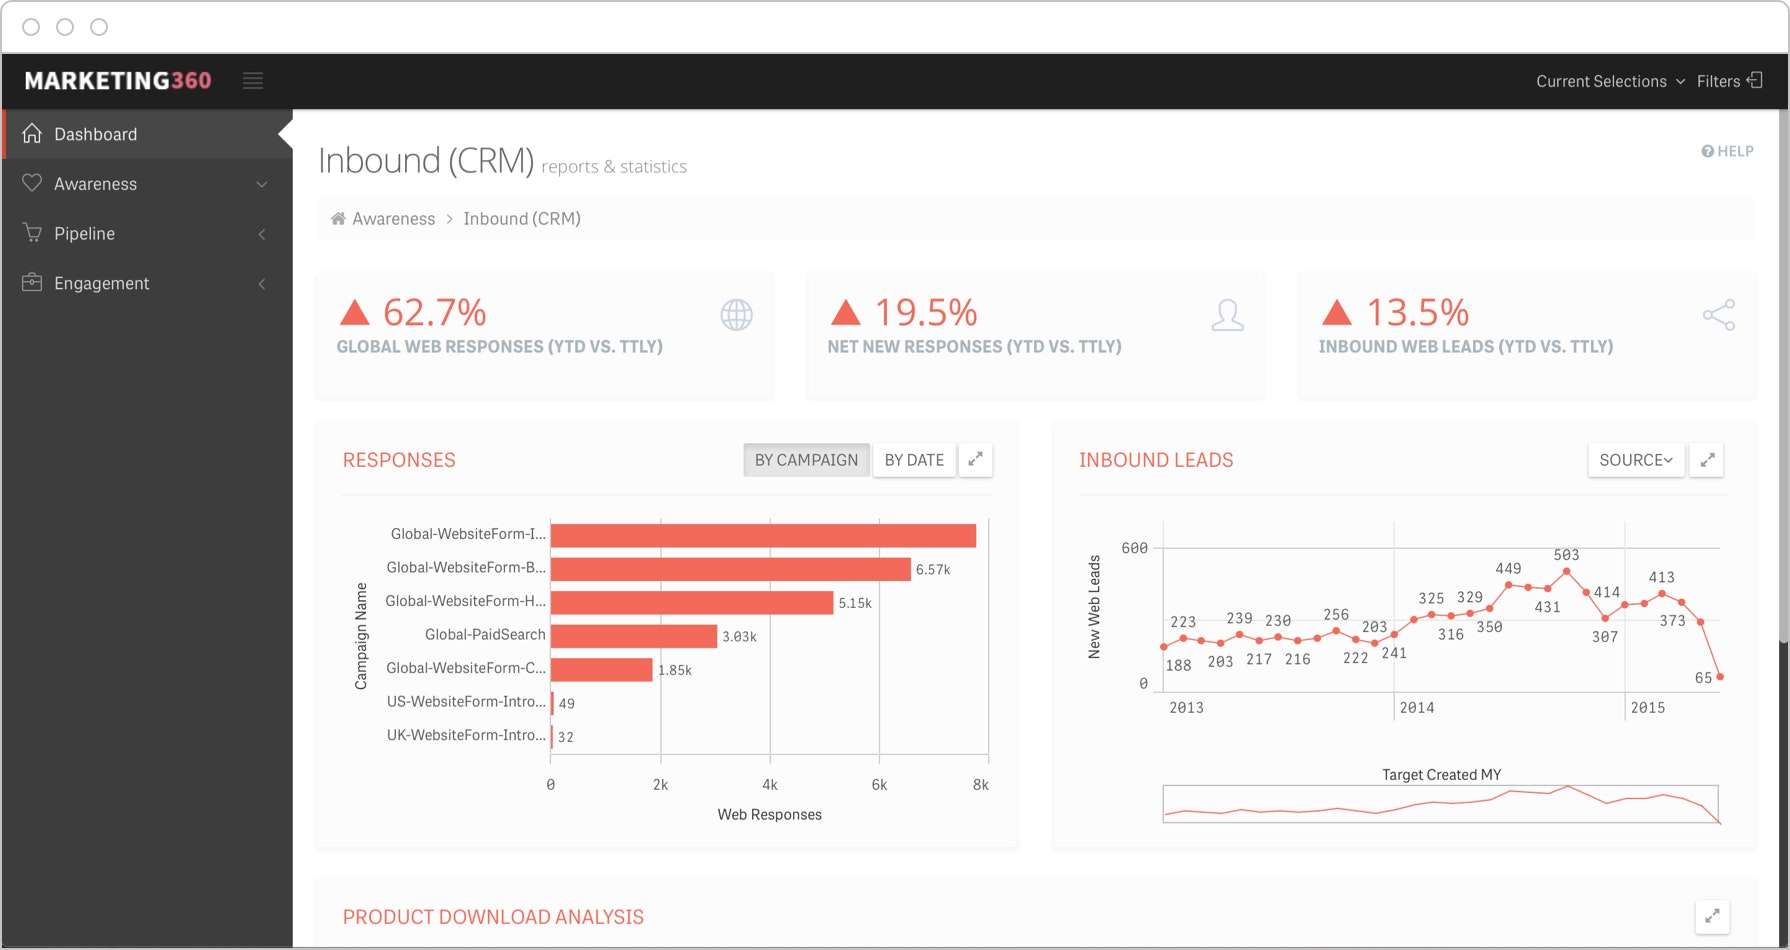 Inbound leads dashboards integrate data from multiple platforms to drill into leads and goals for campaigns.